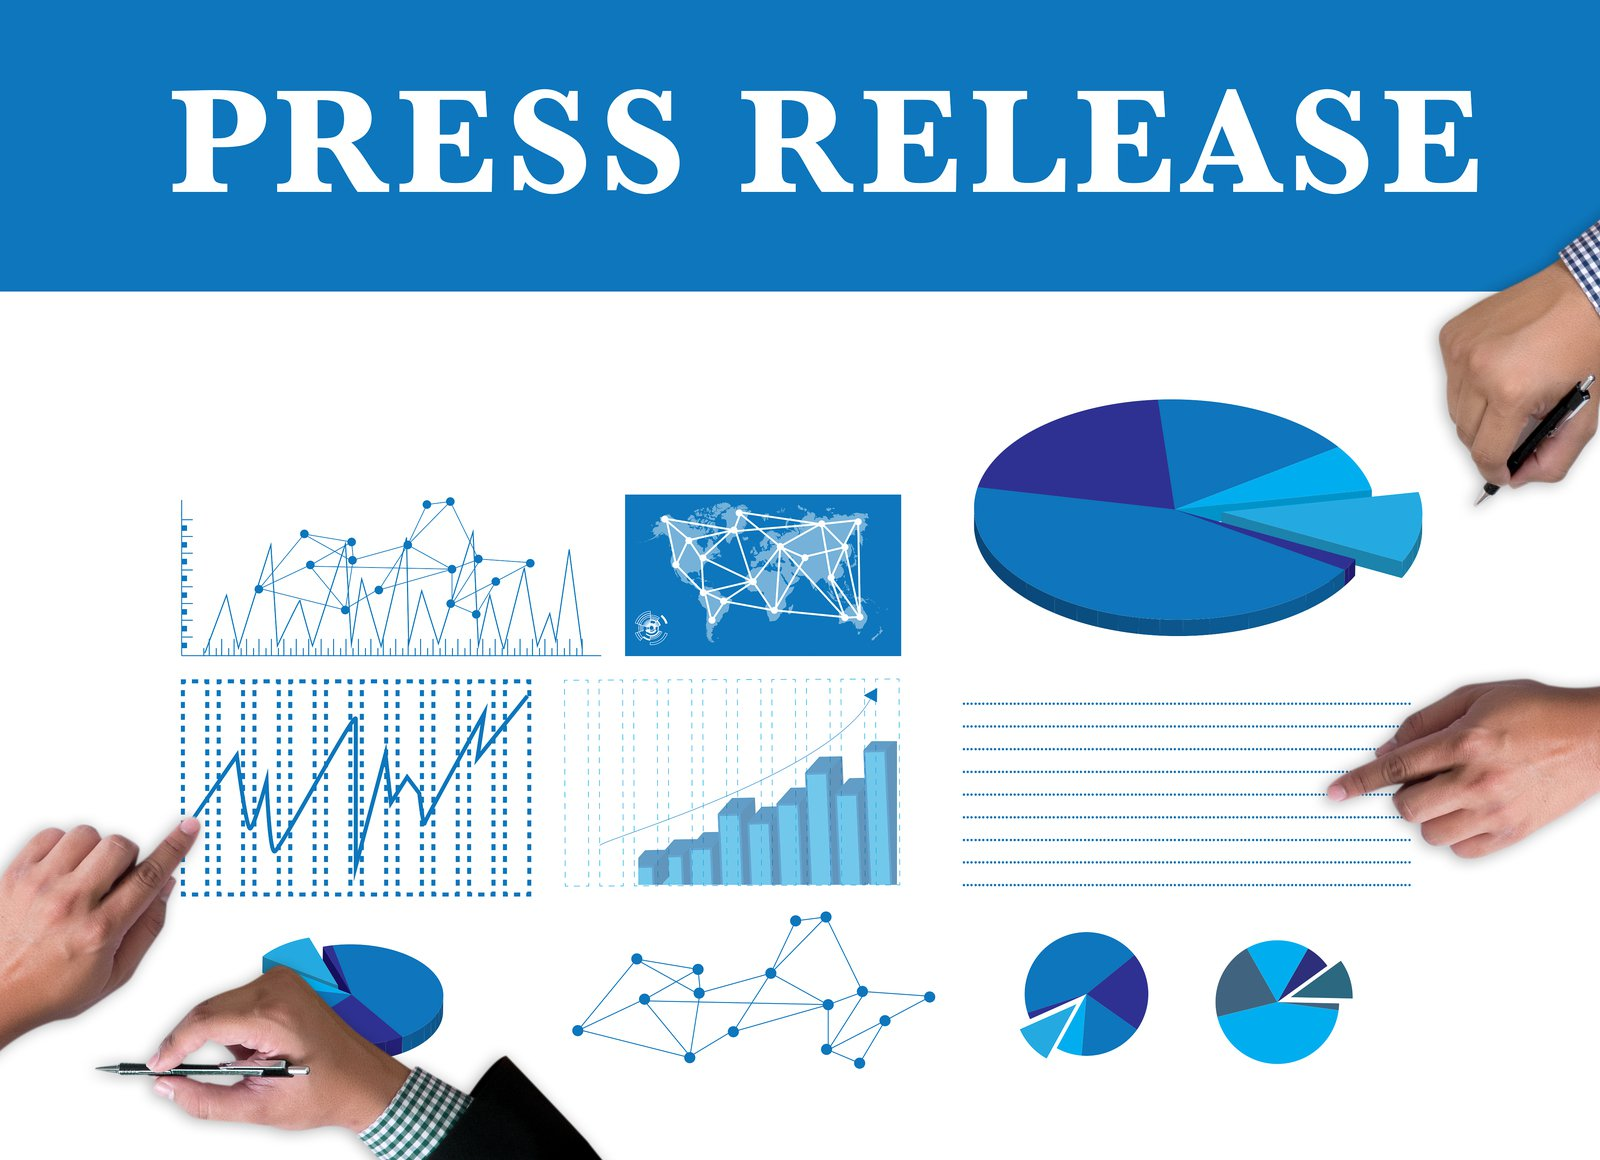 Press Release Distribution - 10 Benefits